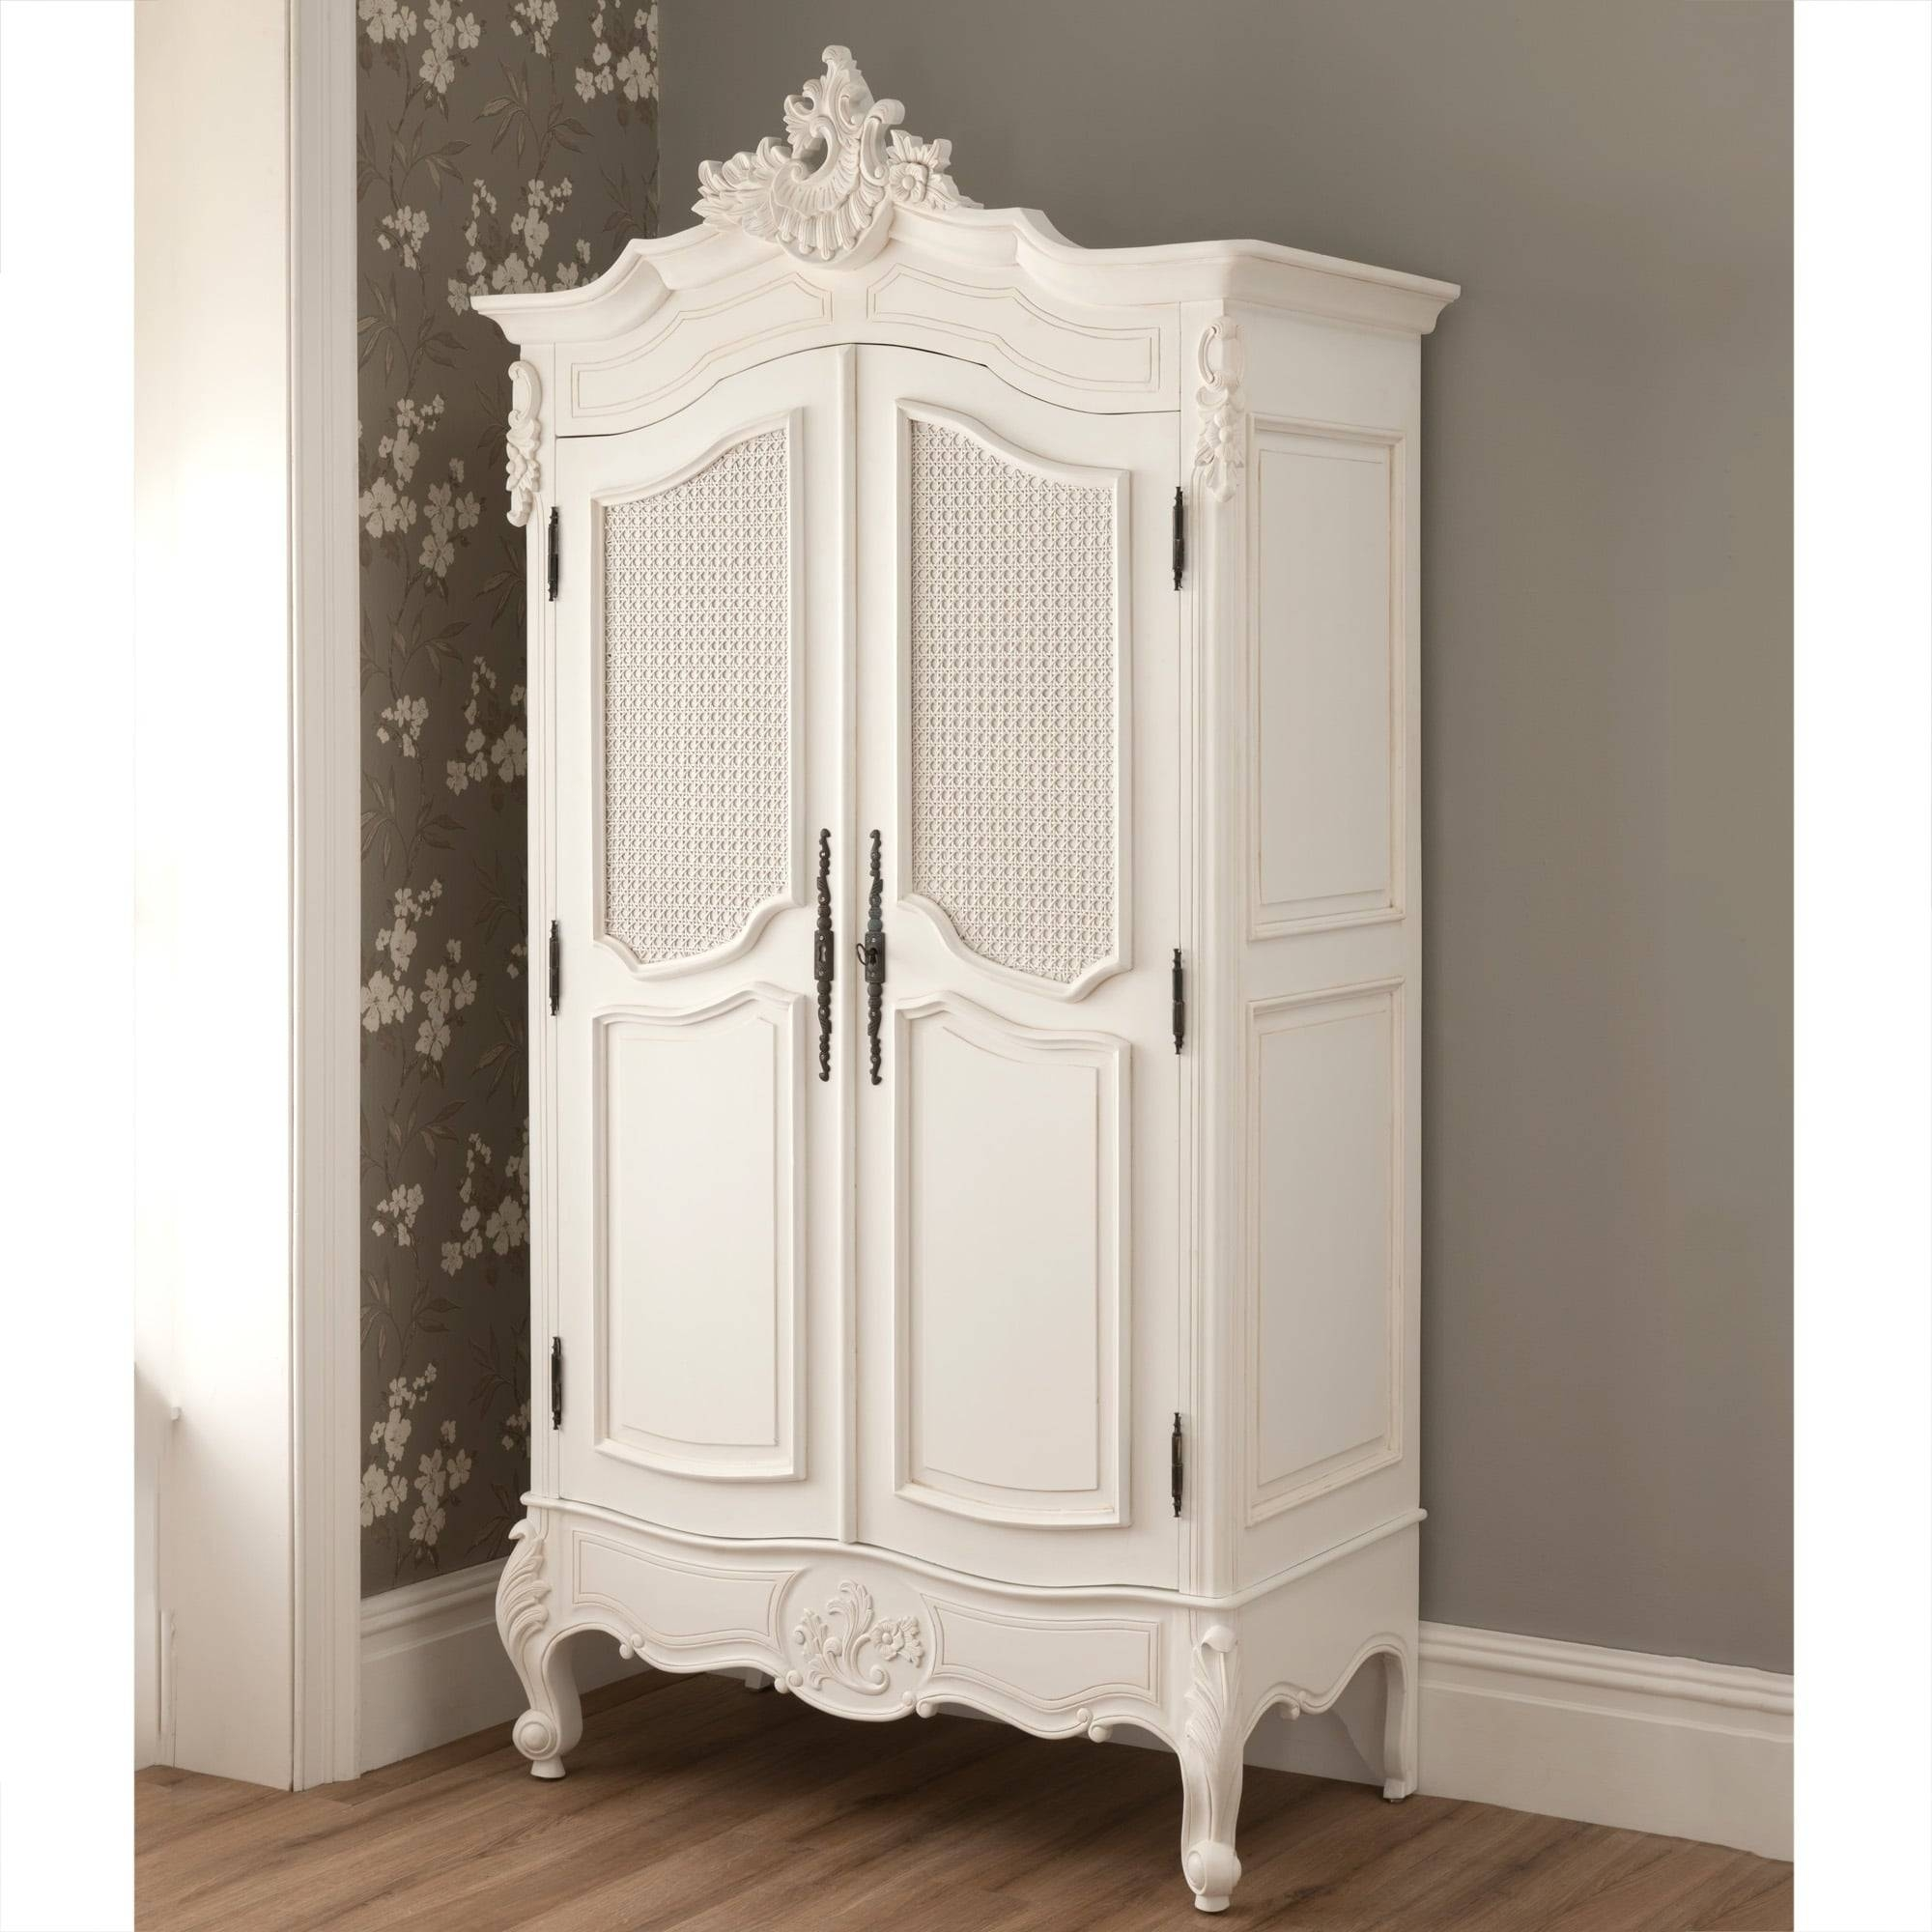 La Rochelle Shabby Chic Antique Style Wardrobe | Shabby Chic Furniture with French White Wardrobes (Image 11 of 15)